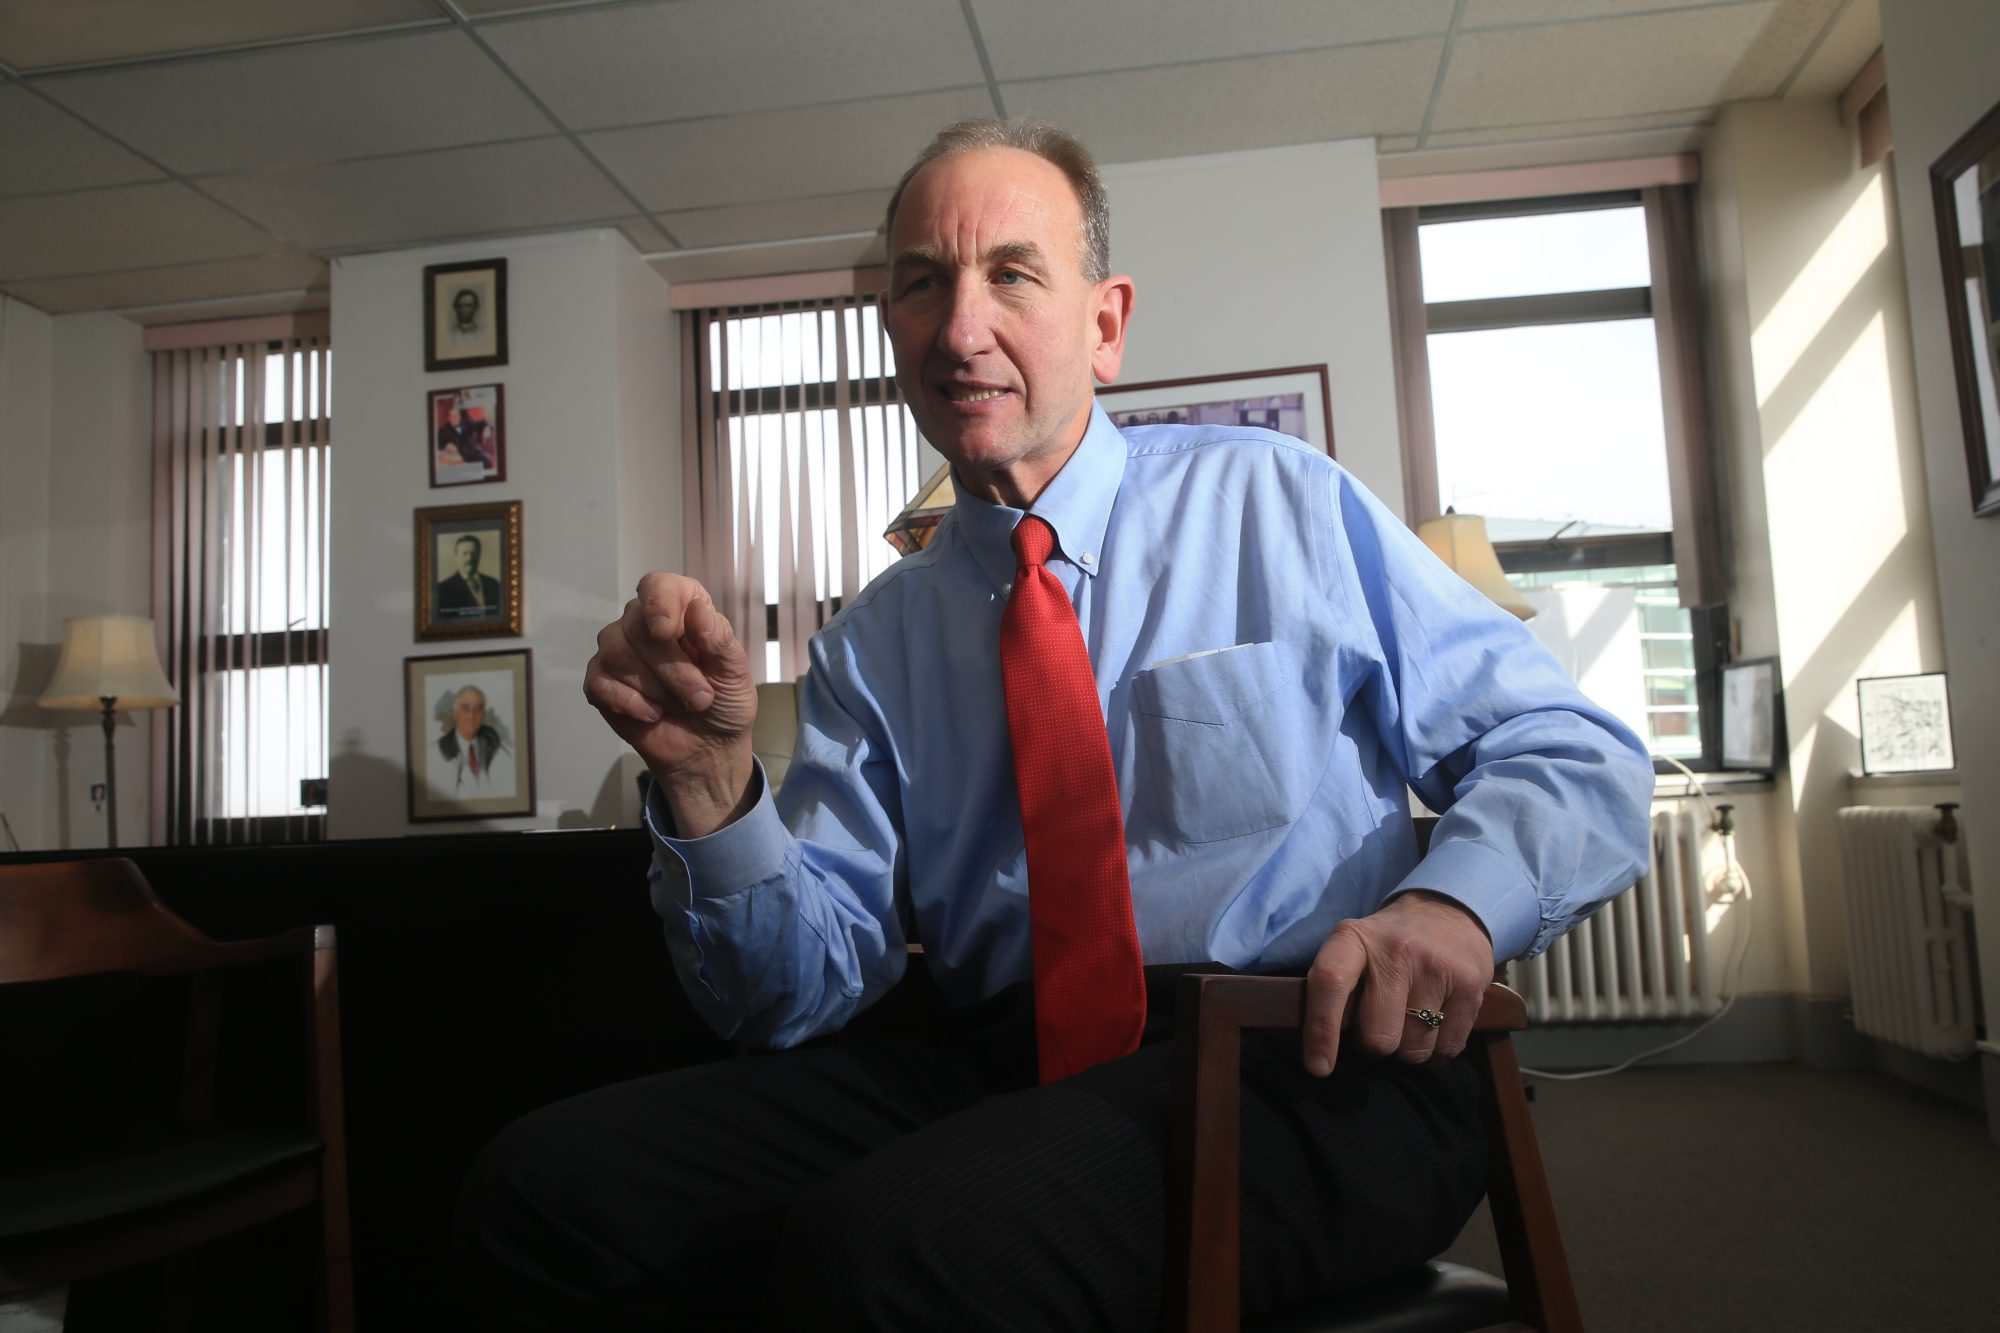 Buffalo Comptroller Mark Schroeder calls Mayor Brown's proposed 2018-19 budget an exercise in 'fuzzy math.' (John Hickey/News file photo)